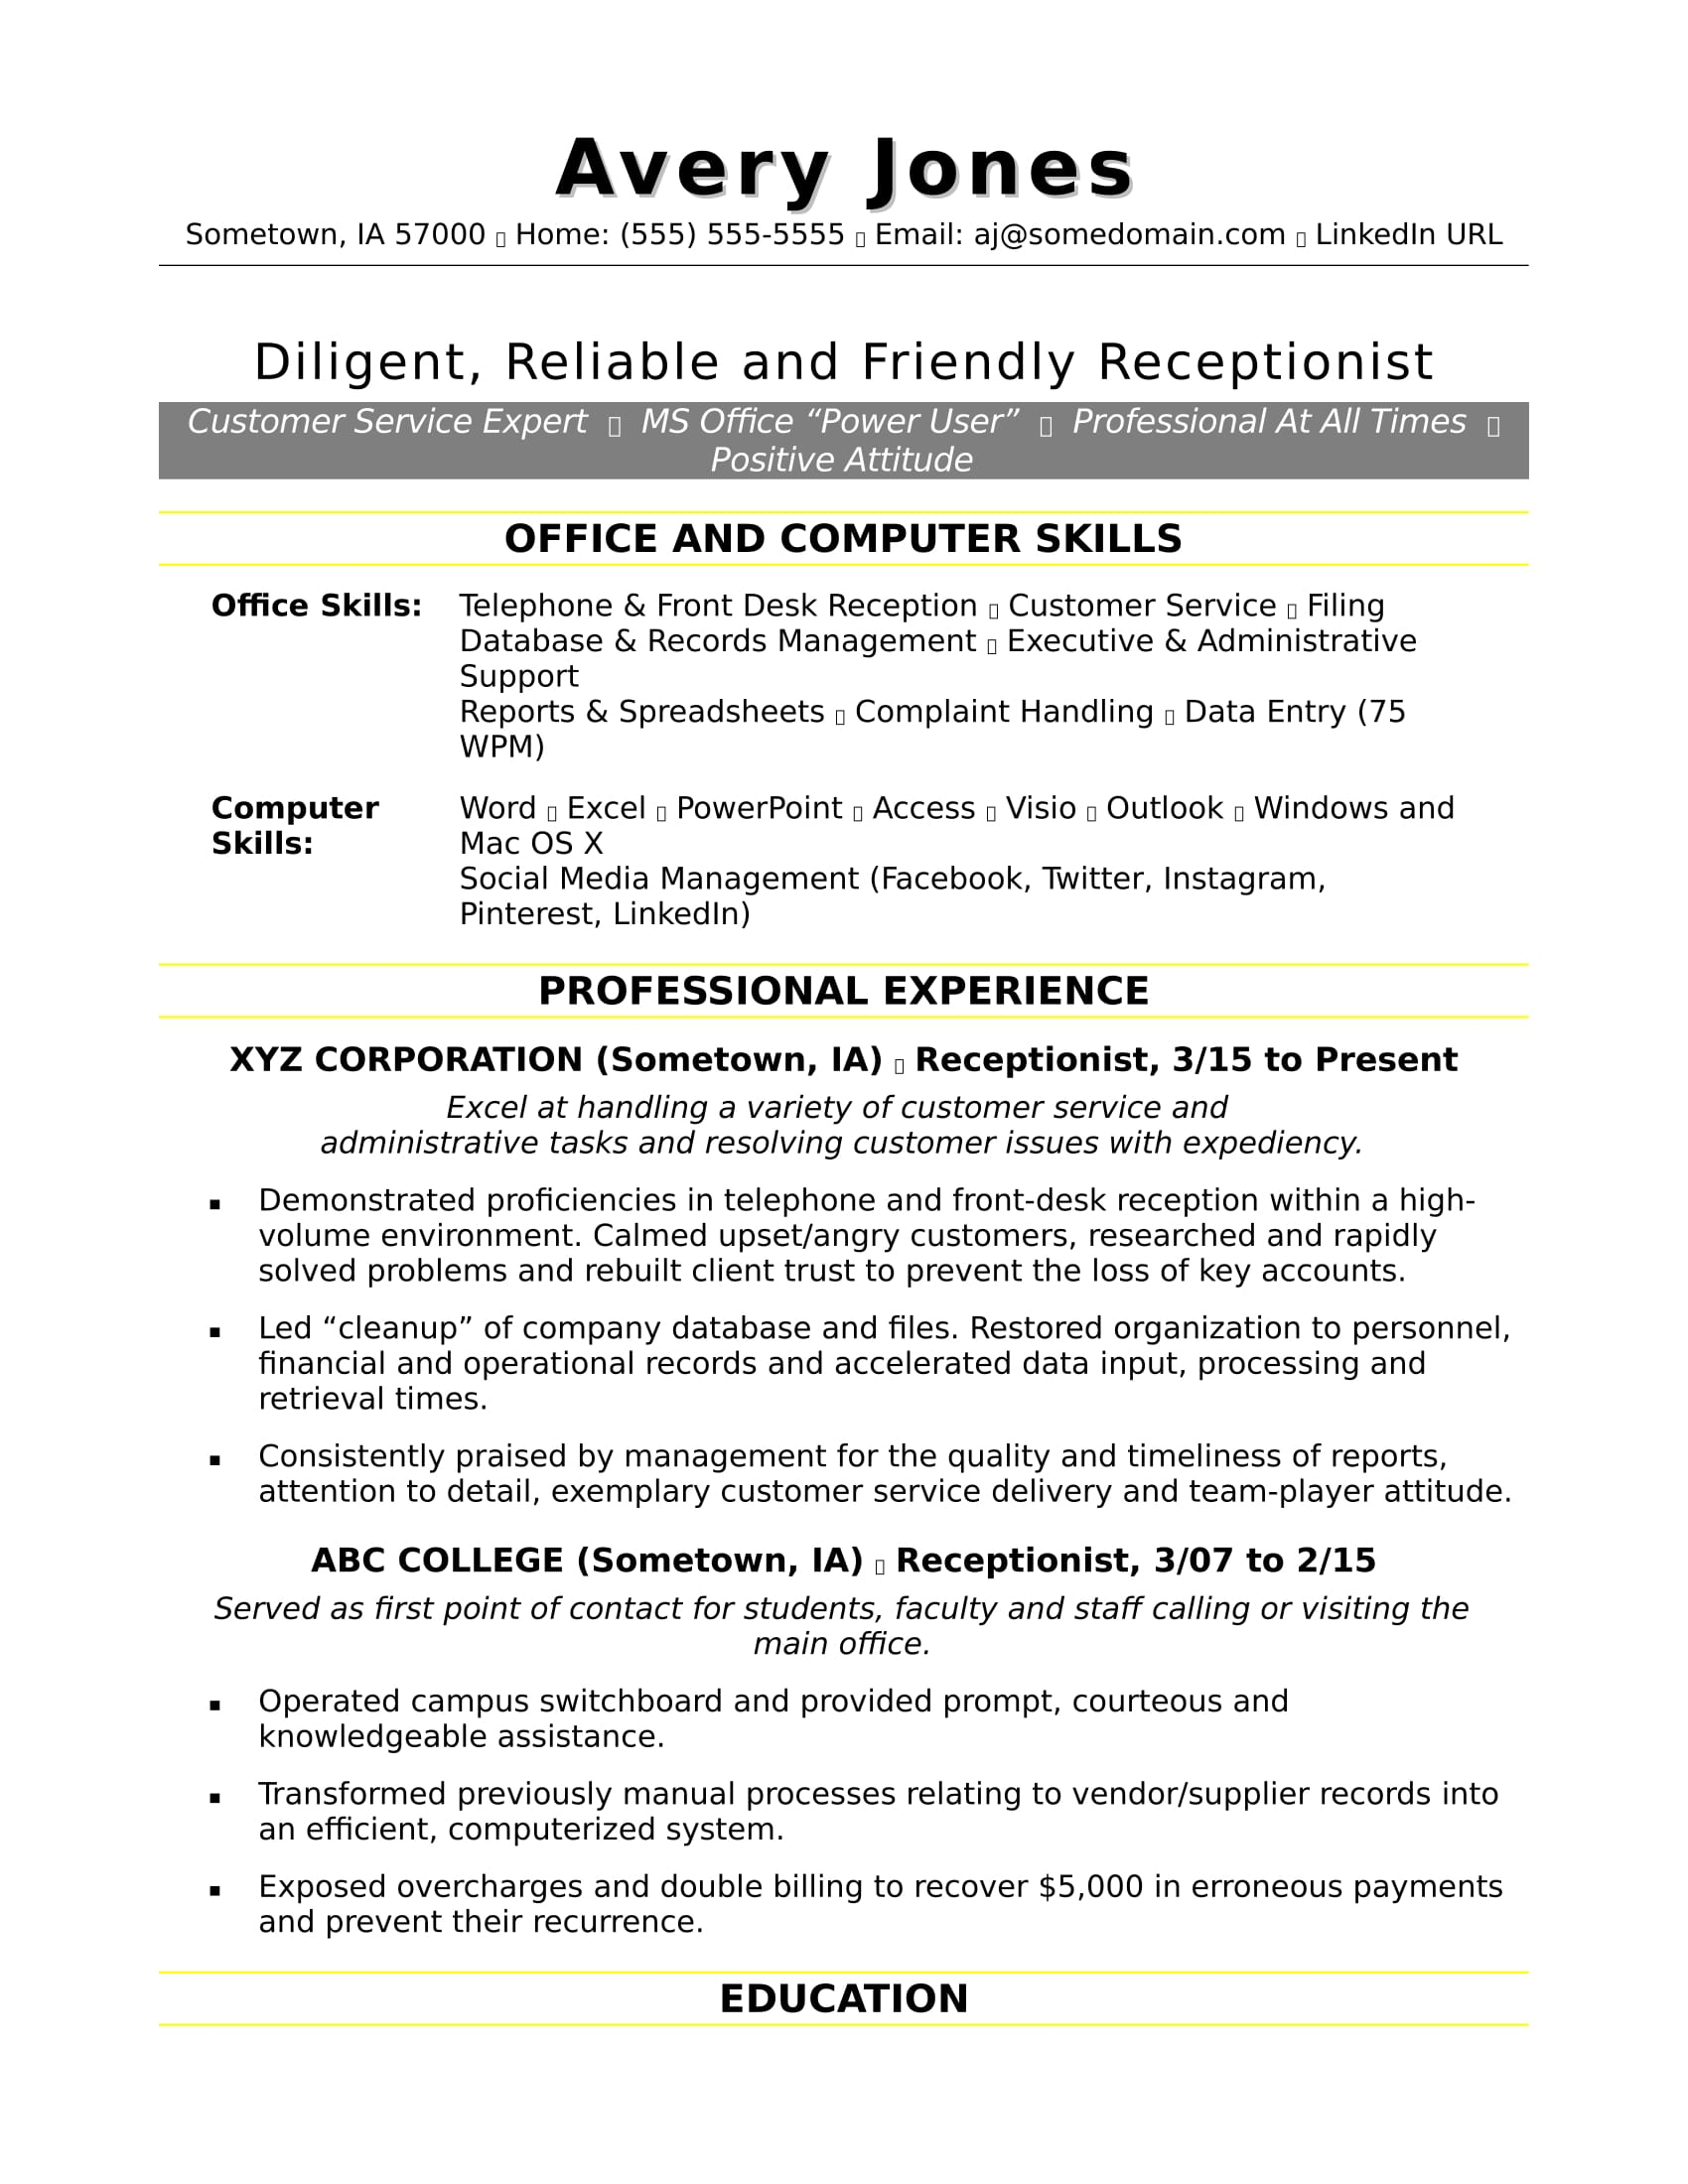 sample resume for a receptionist - Sample Resume For Customer Service